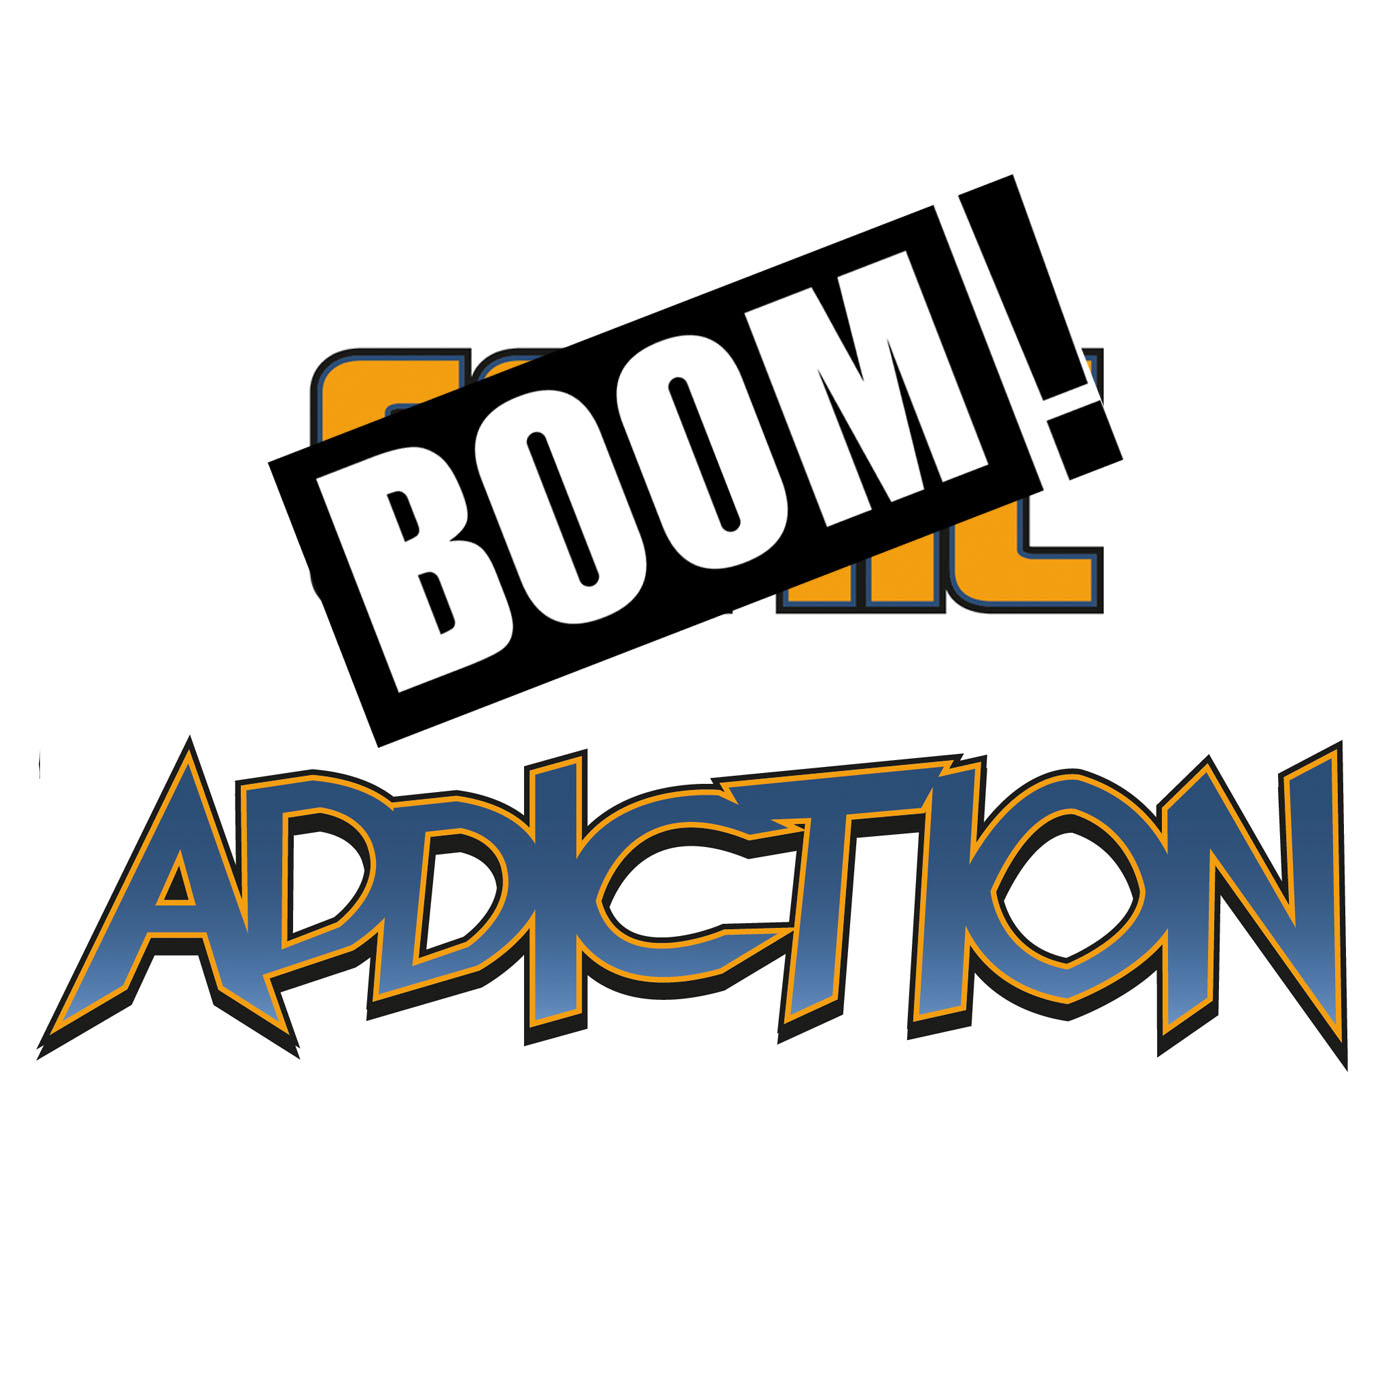 Boom! Addiction - Episode 1: Hello. My Name Is...